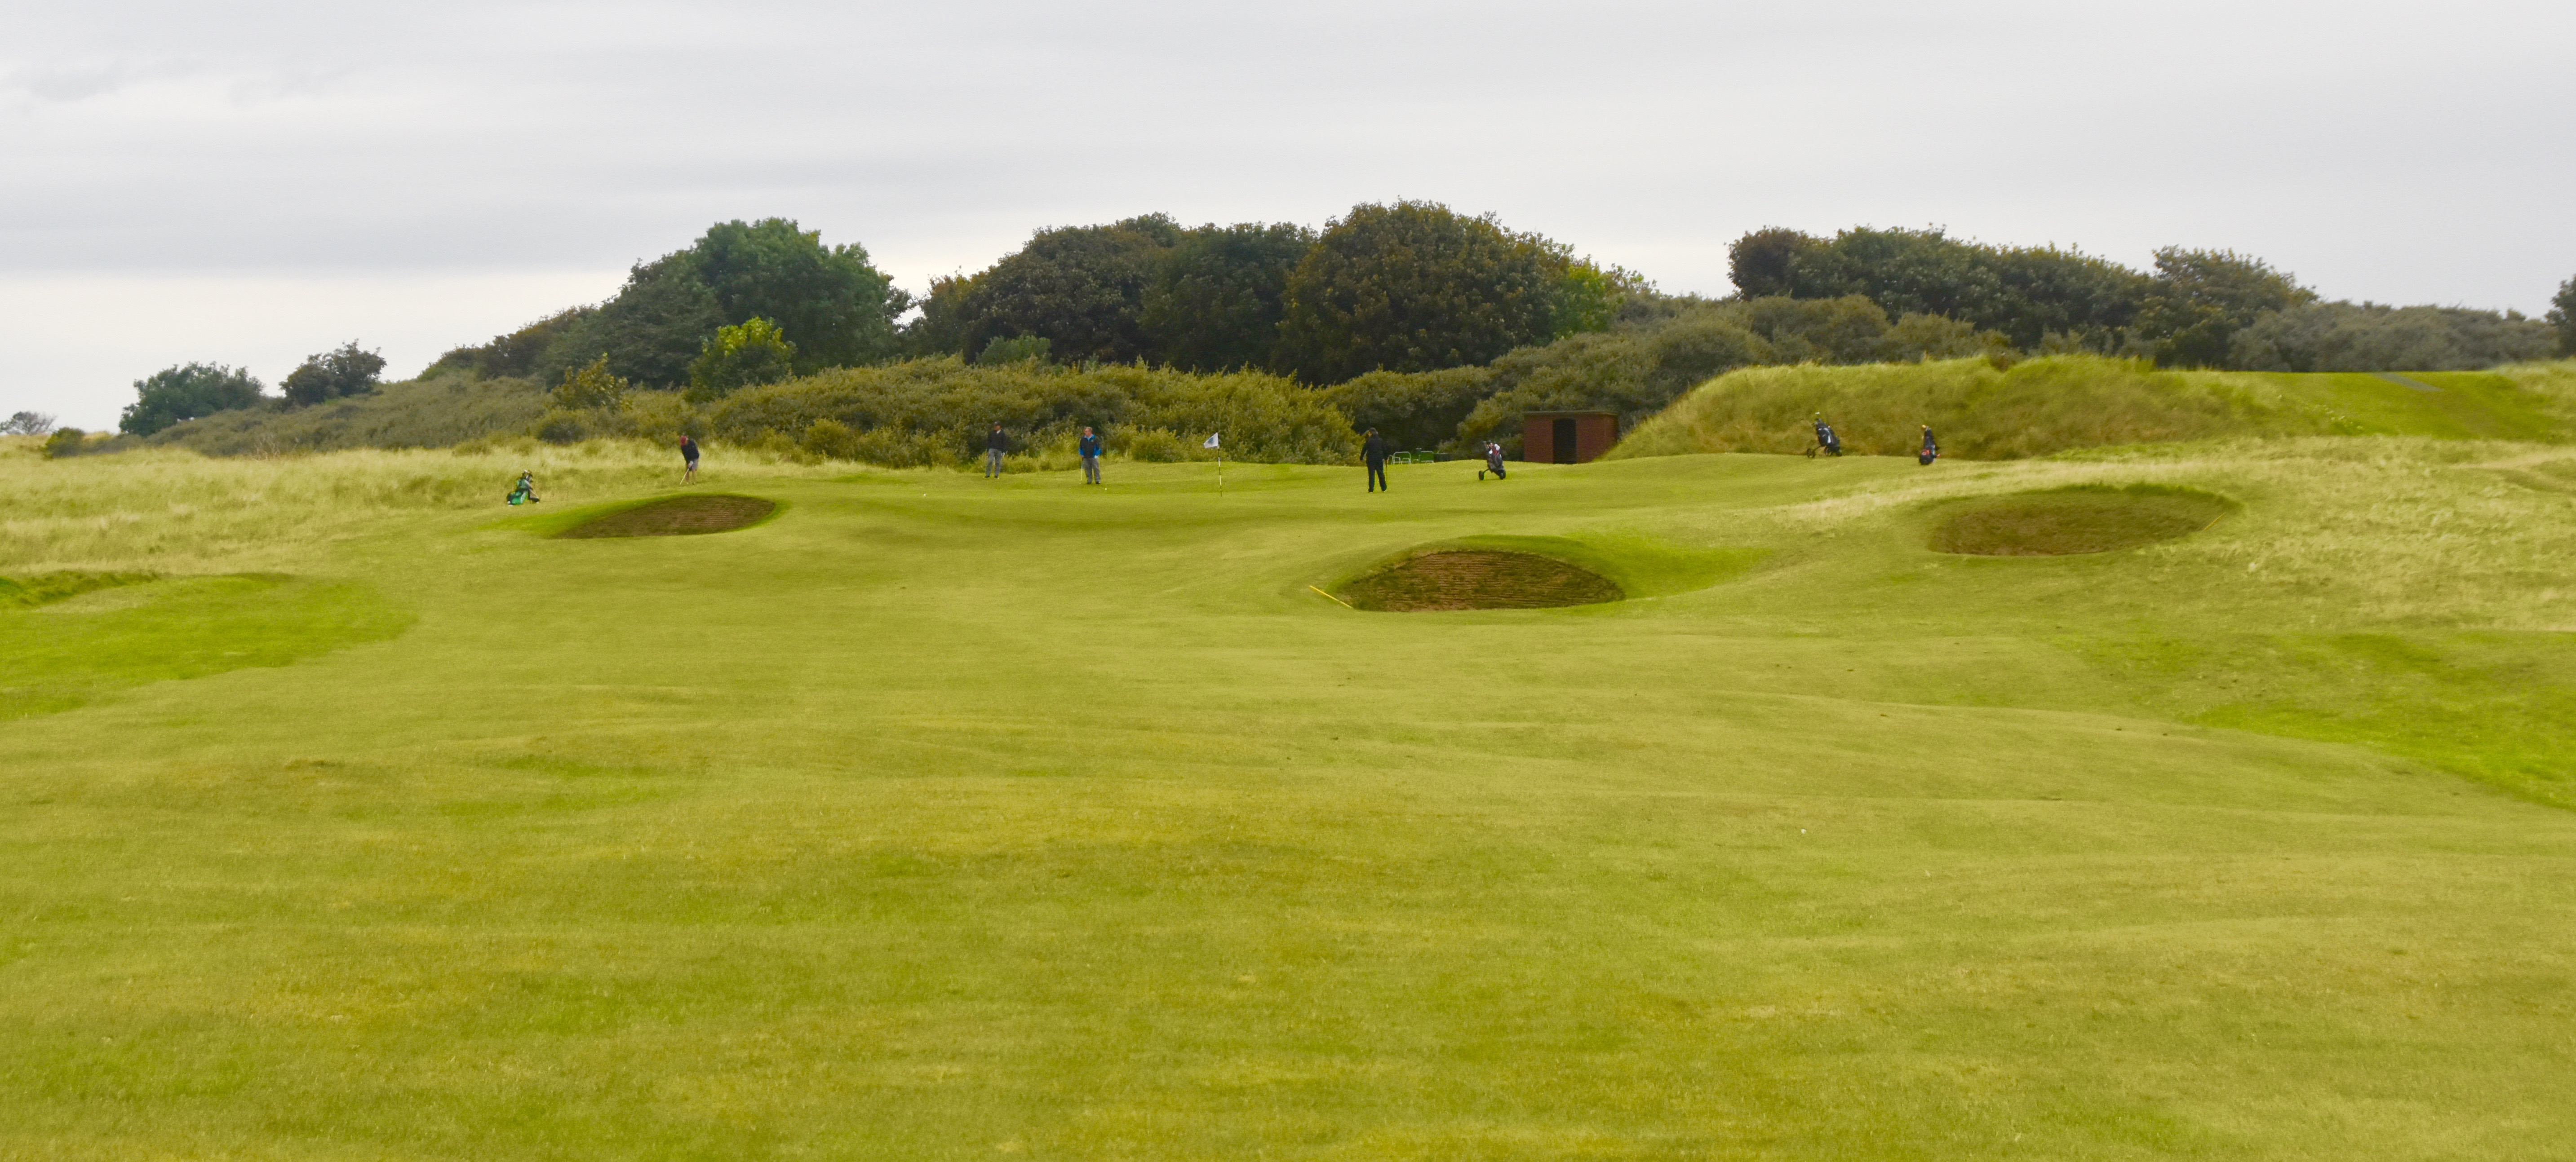 Approach to No. 9 Green